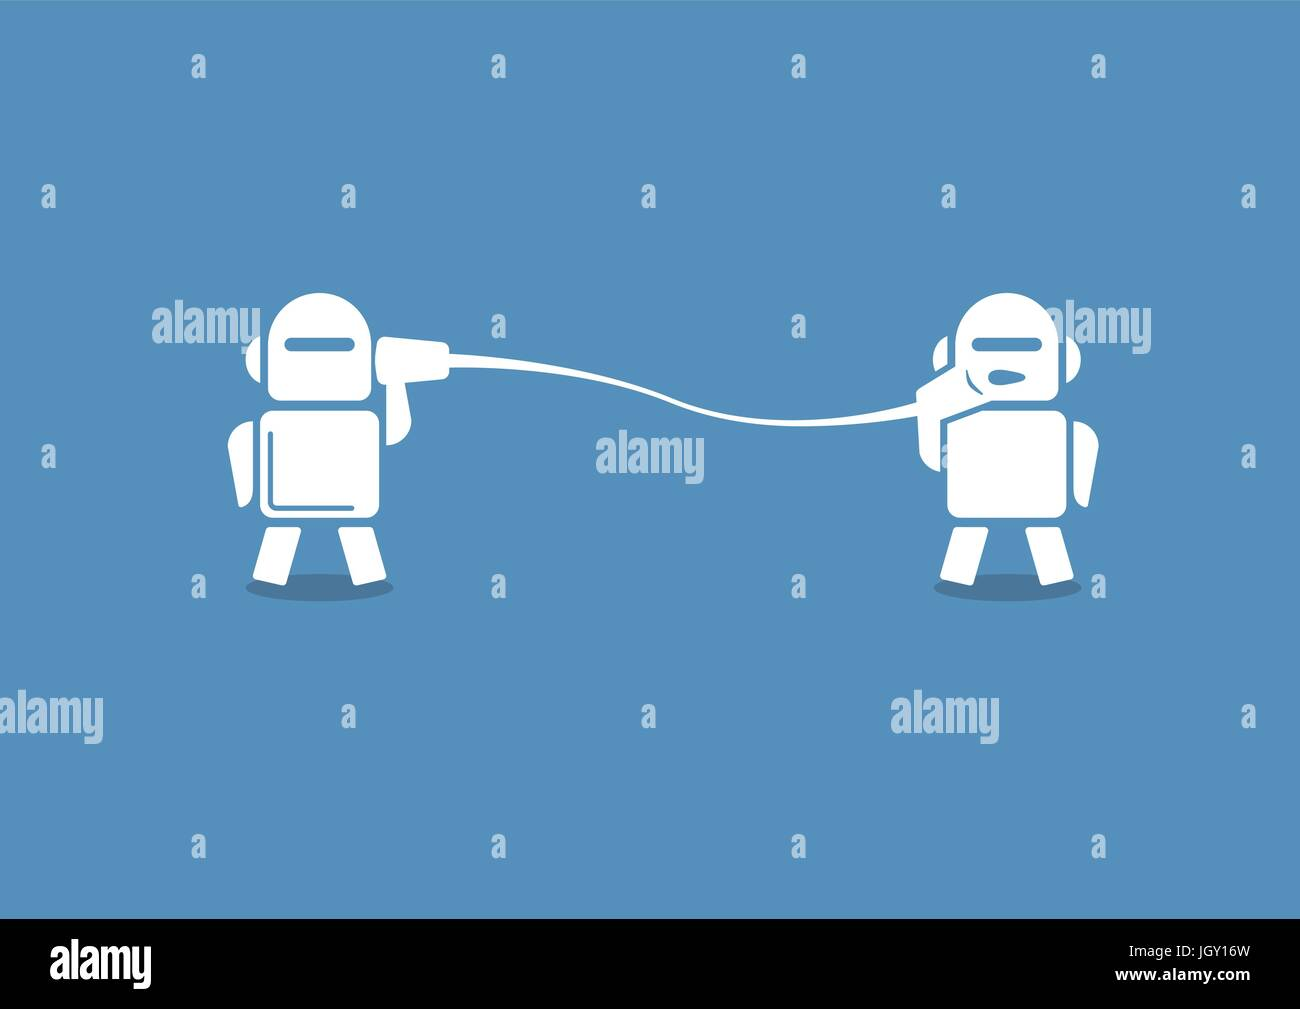 Robo advisor concept as vector illustration. Two robots communicating with each other on blue background. - Stock Image